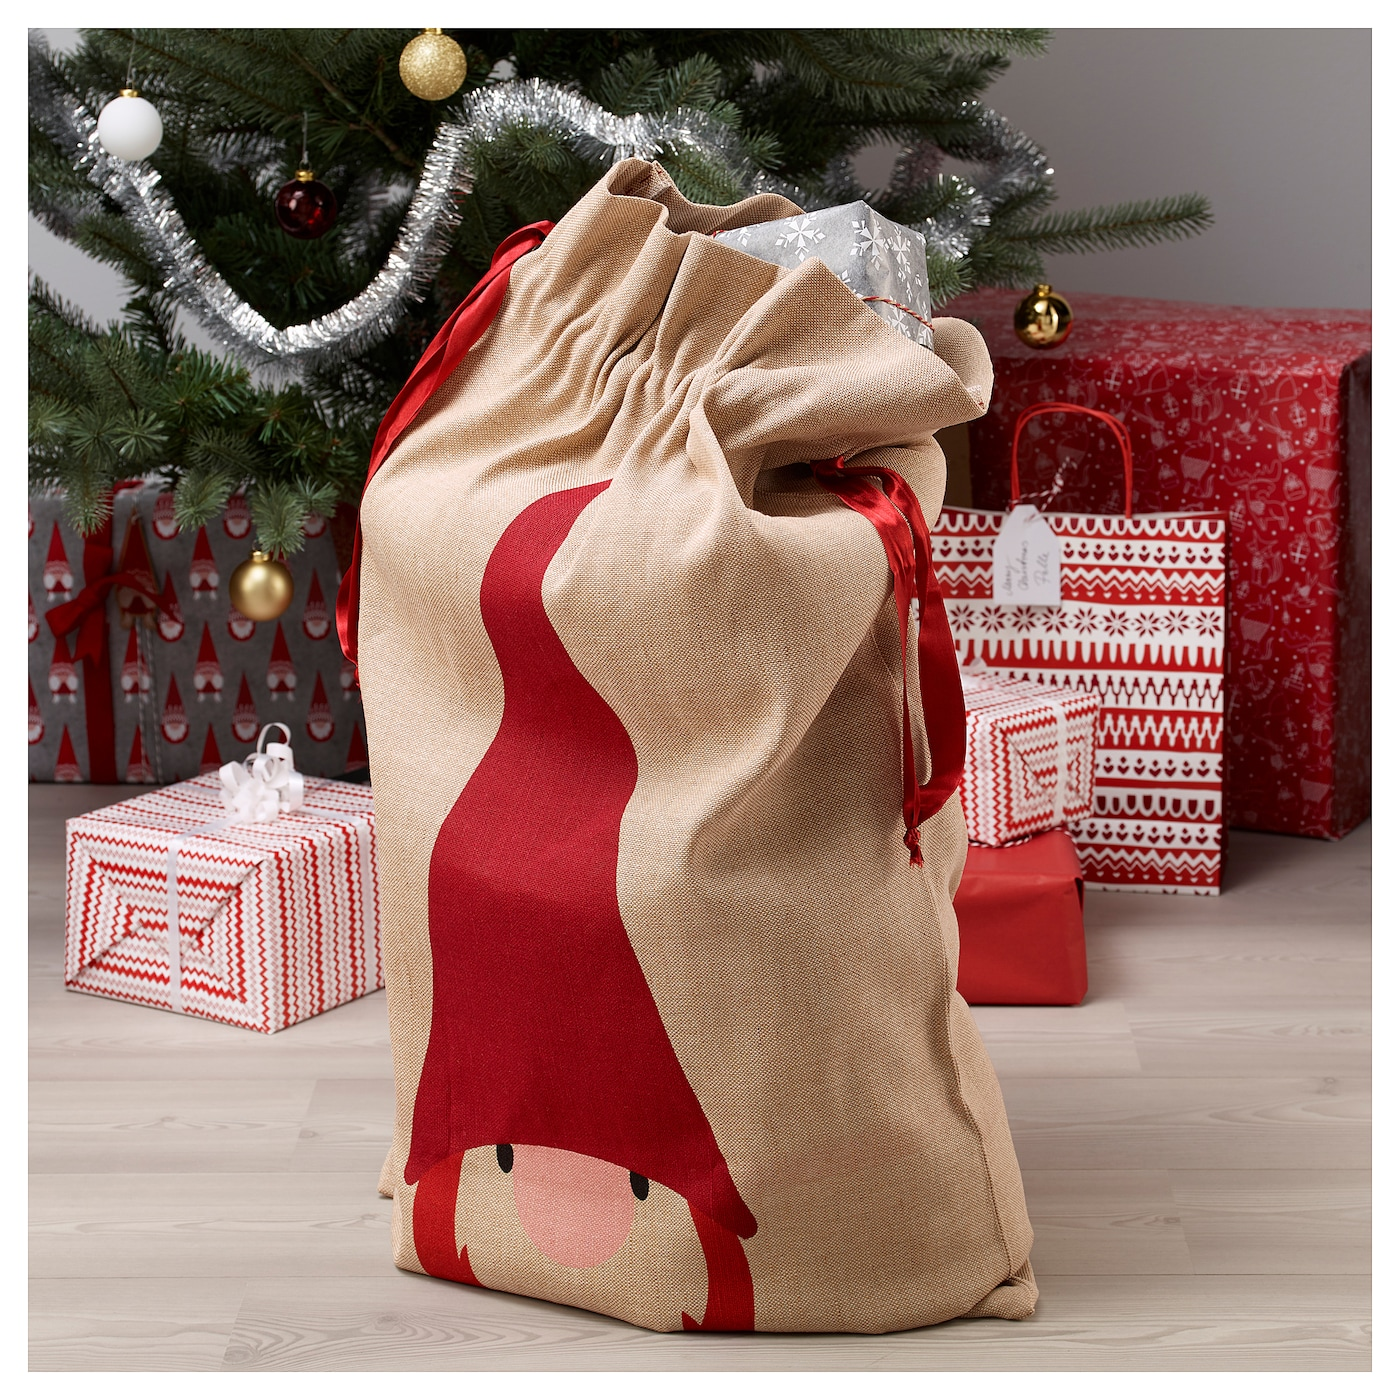 IKEA VINTER 2017 sack with string Can be used instead of gift wrap paper.